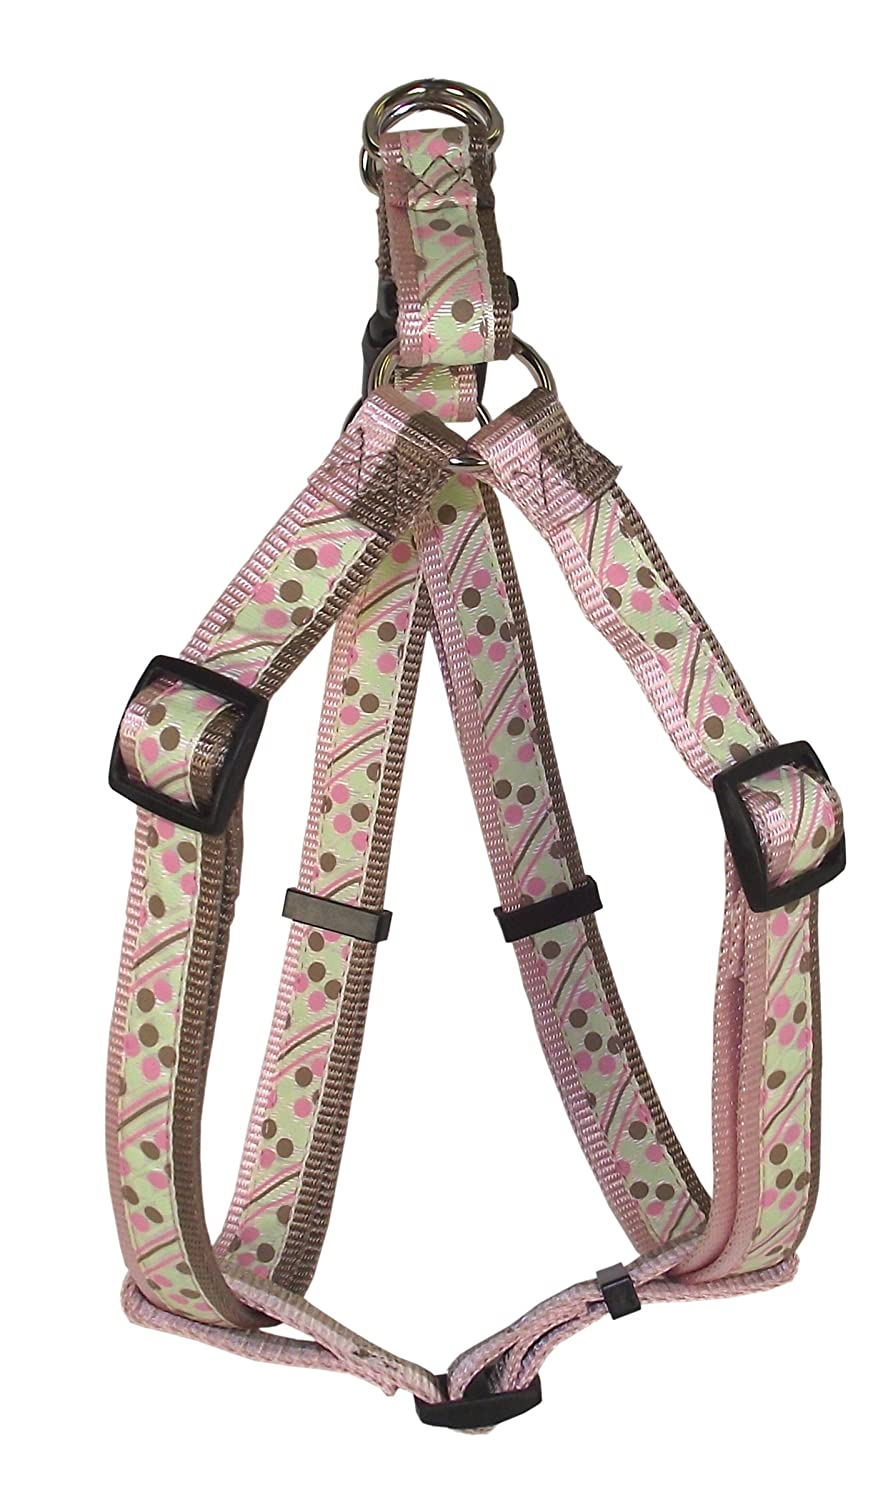 Hamilton Spumoni Collection Nylon Adjustable Easy-On Dog Harness, 1-Inch by 30 to 40-Inch, Dots and Stripes